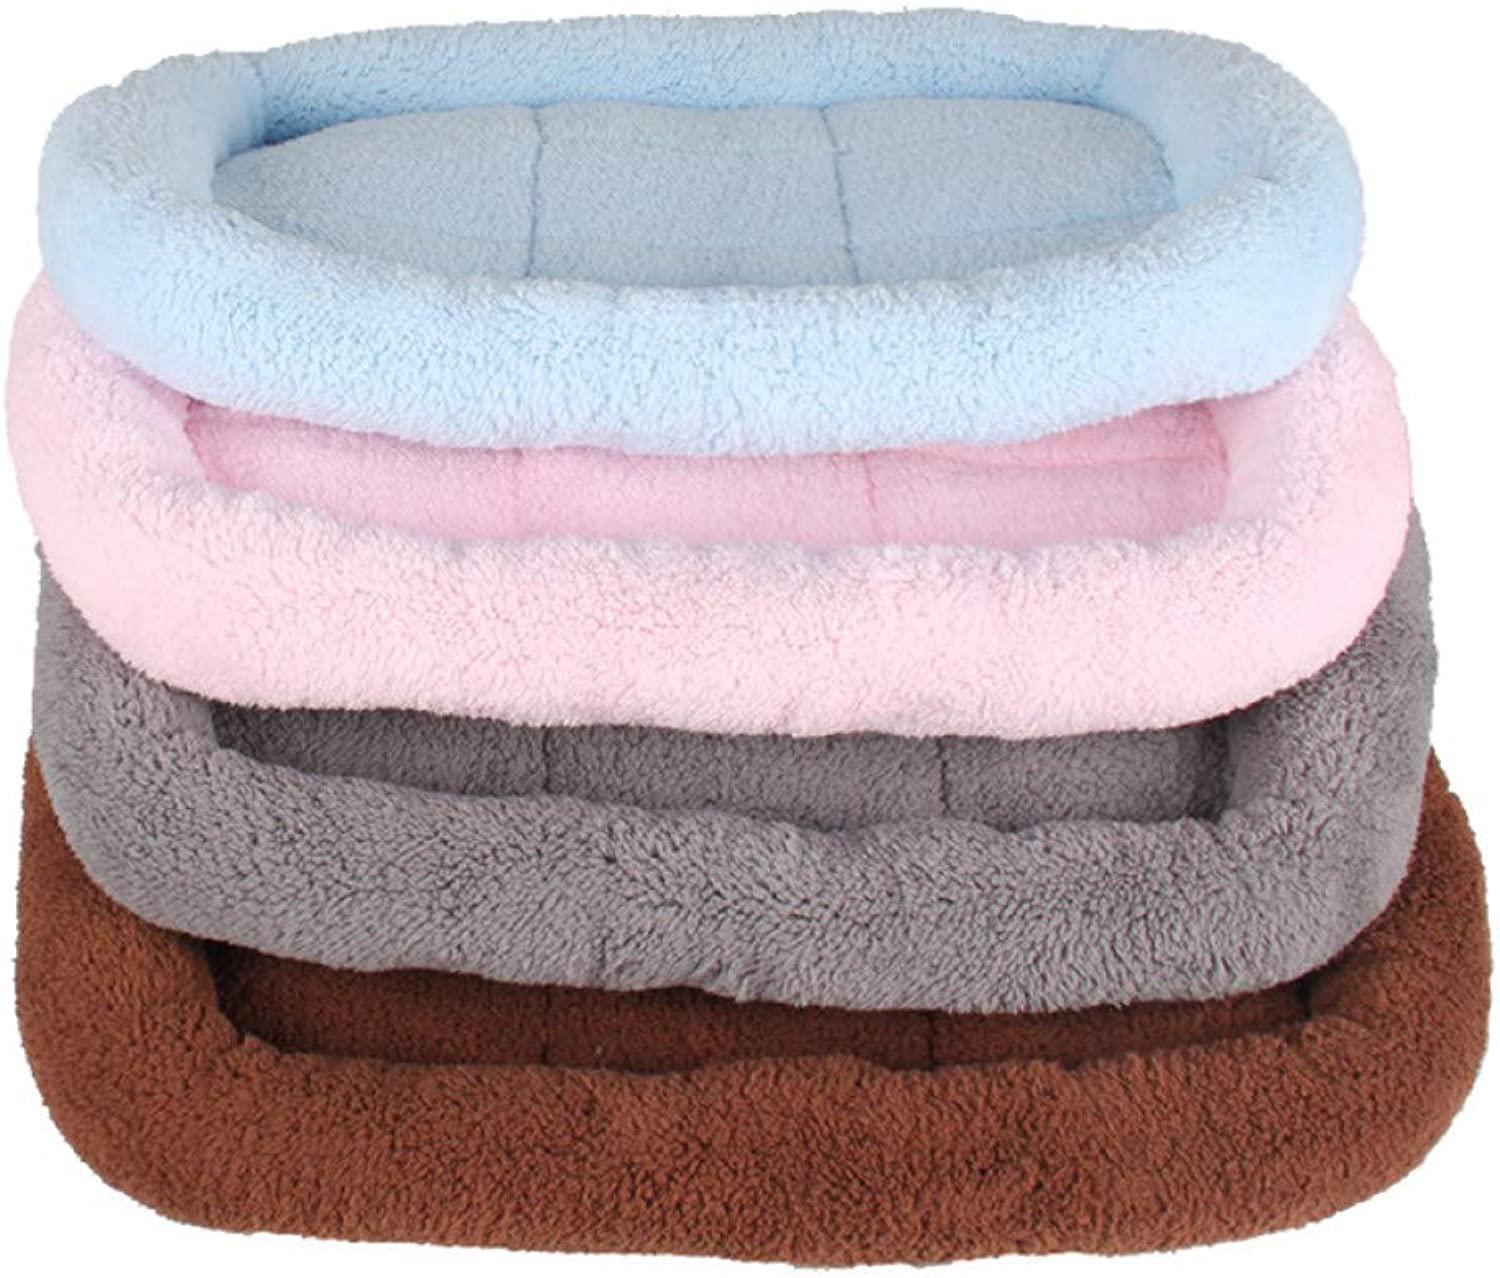 Aigou Dog Bed Soft Dog Bed Mat Kennel Portable Breathable Pet Dog Crate Mattress For Small Large Dogs Washable Cat Sleeping Pads Pet Supplies